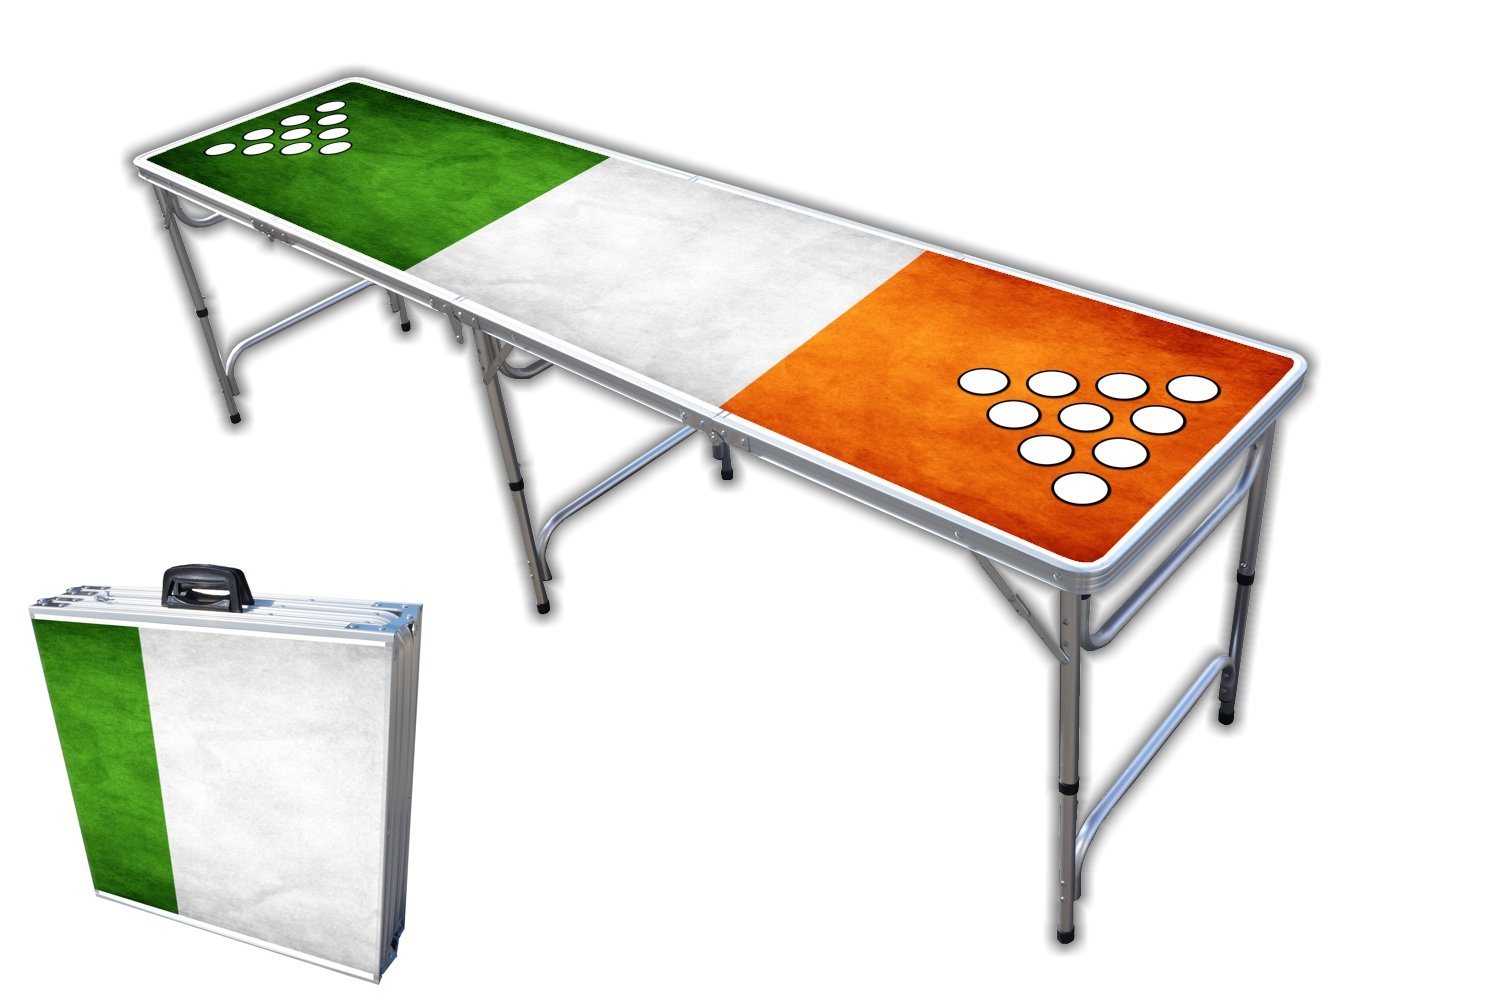 8-Foot Professional Beer Pong Table w/Cup Holes - Shenanigans Graphic